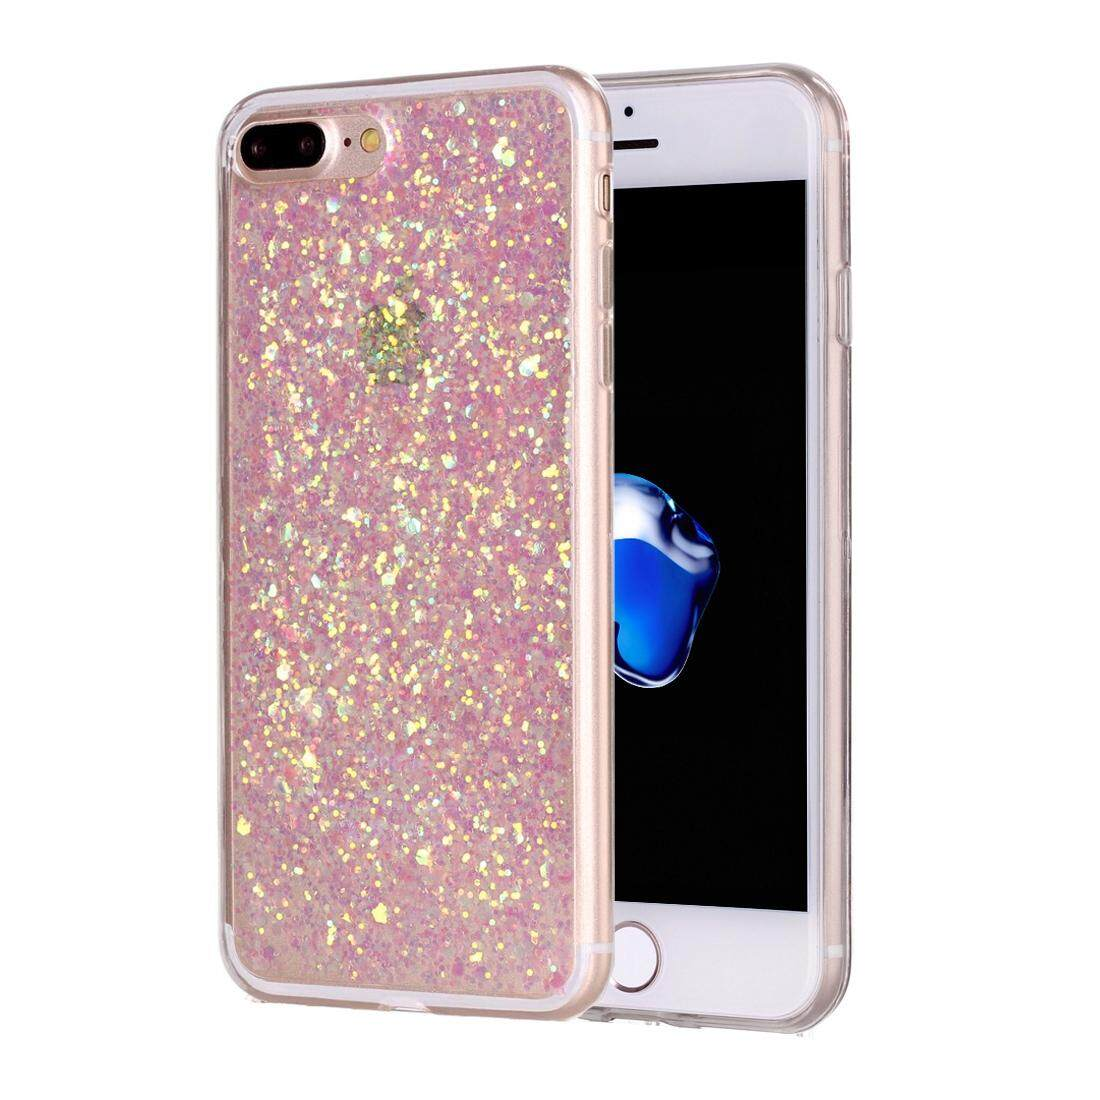 Features Mercury Goospery Jelly Case For Iphone 8 Plus And 7 Sky Slide Bumper Gold Glitter Powder Soft Tpu Protective Pink